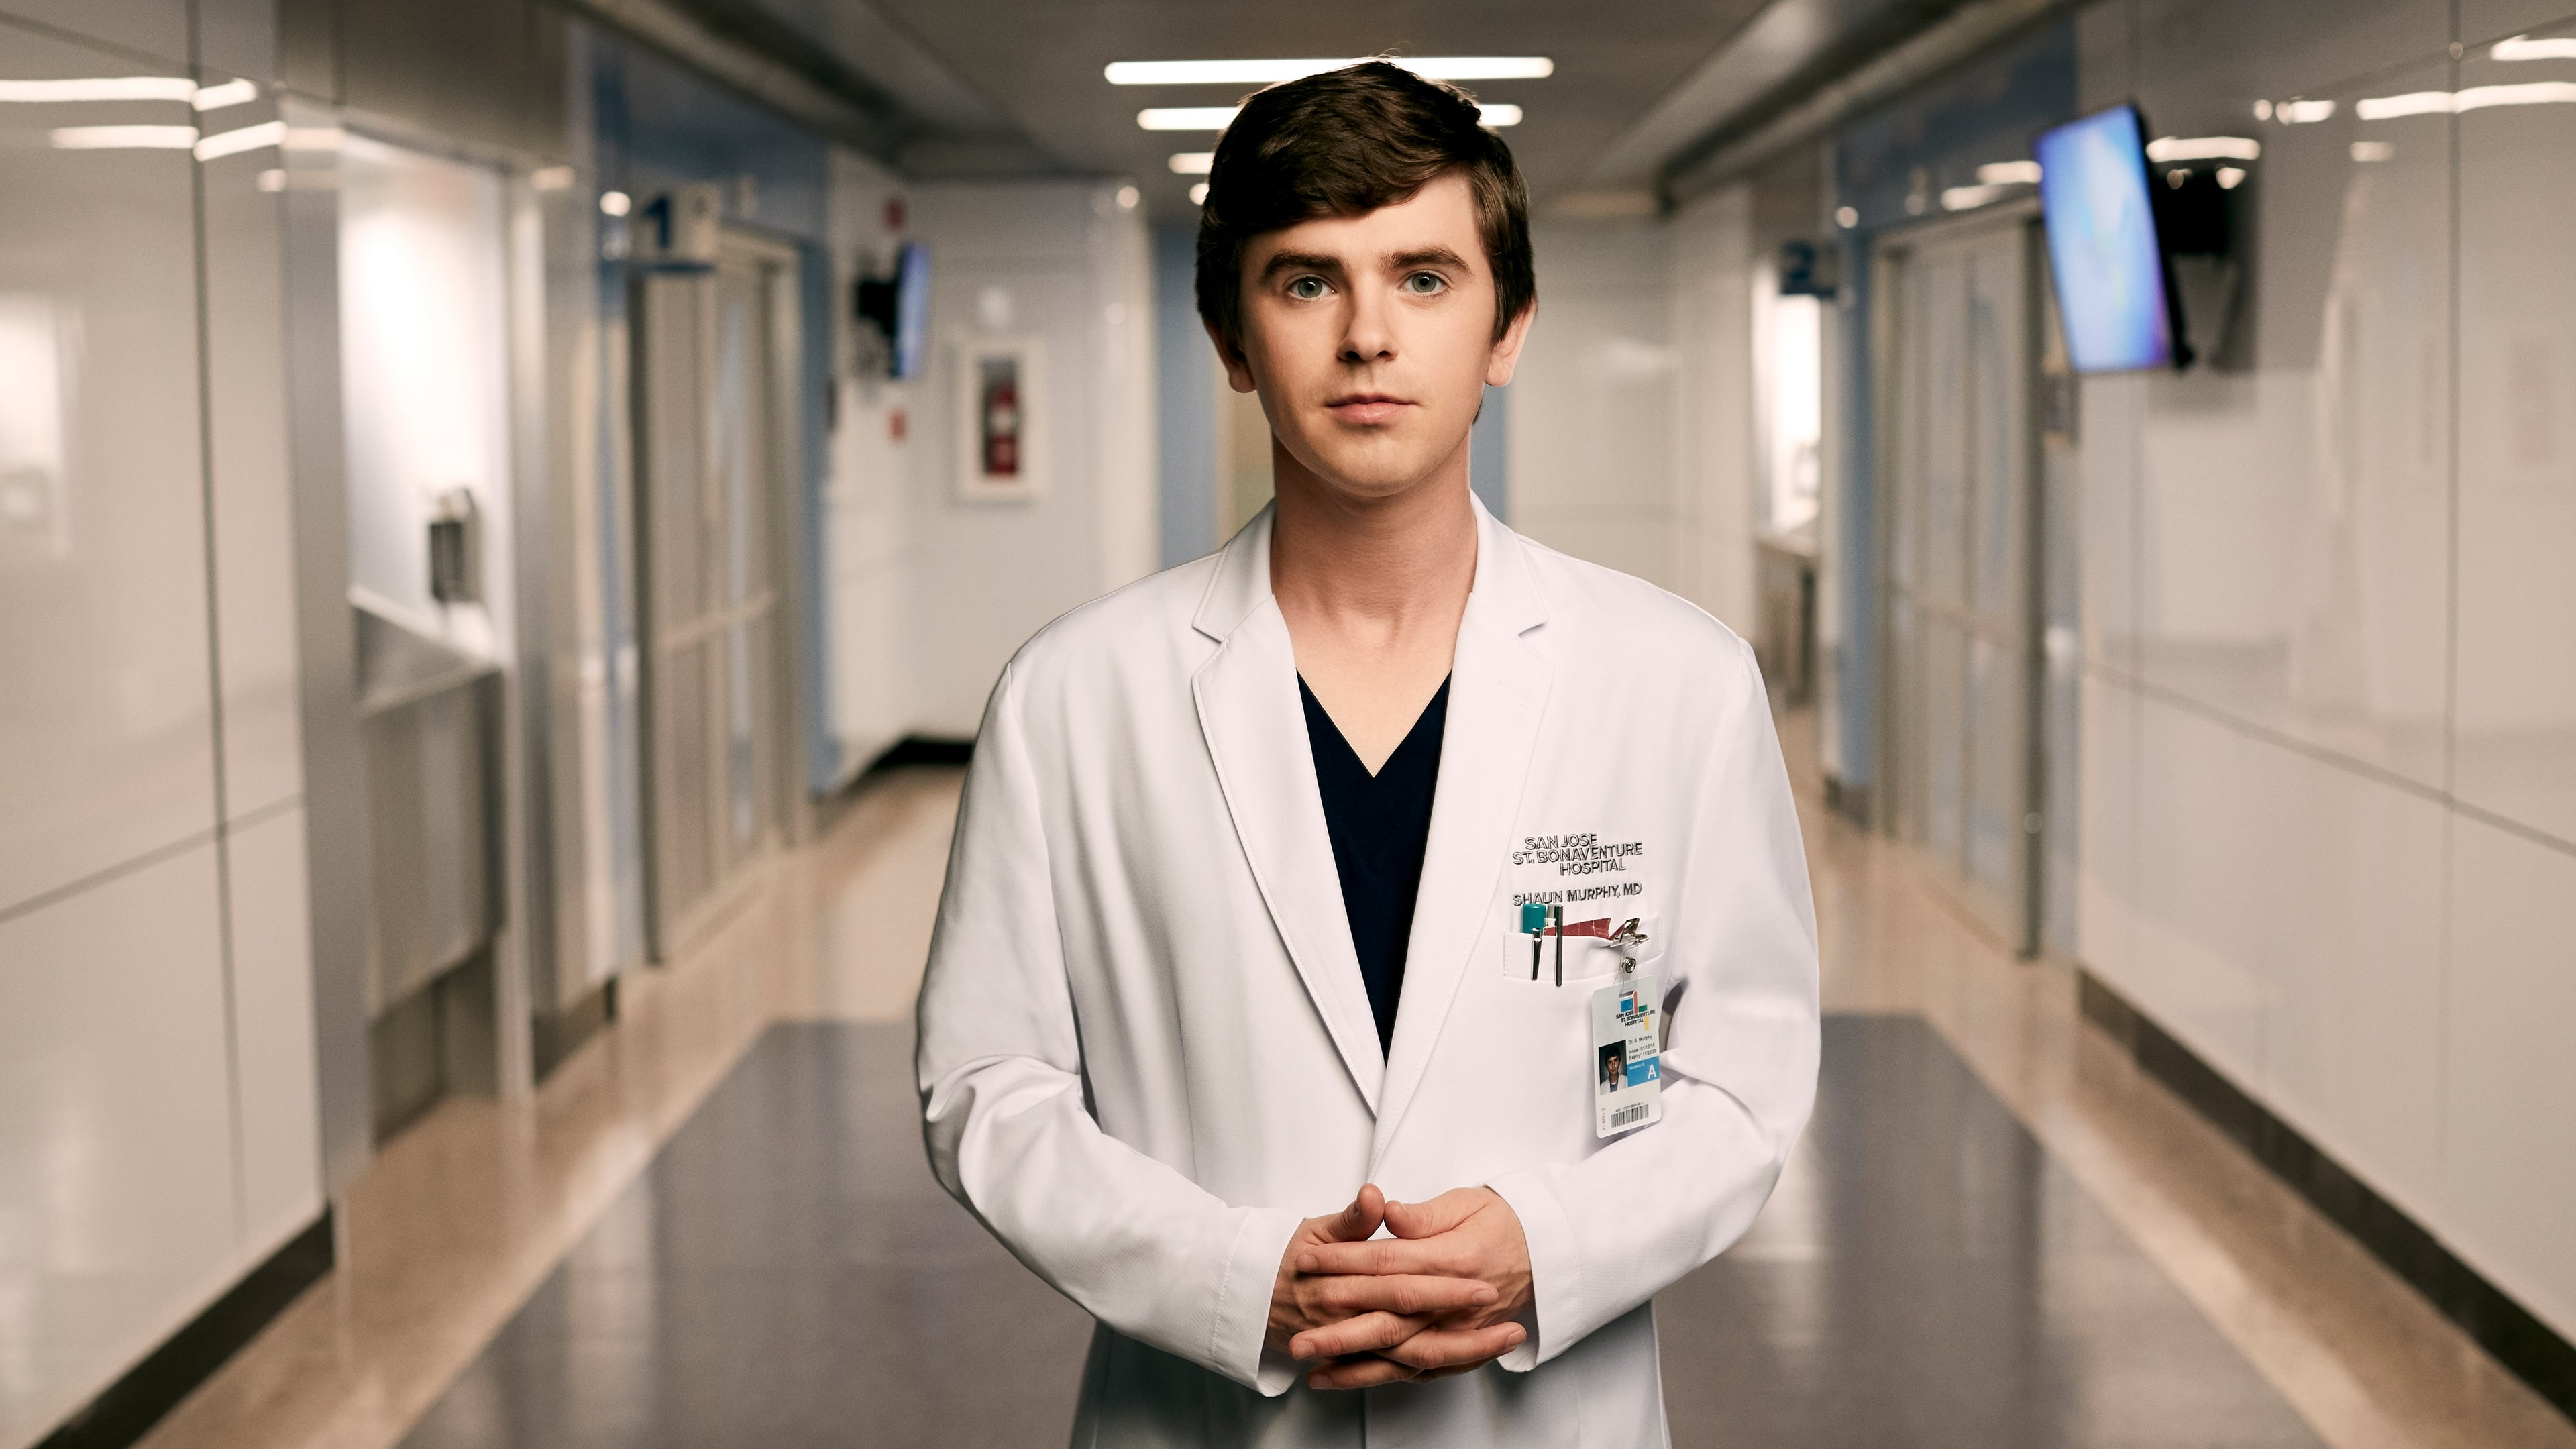 The Good Doctor renewed with its fifth season